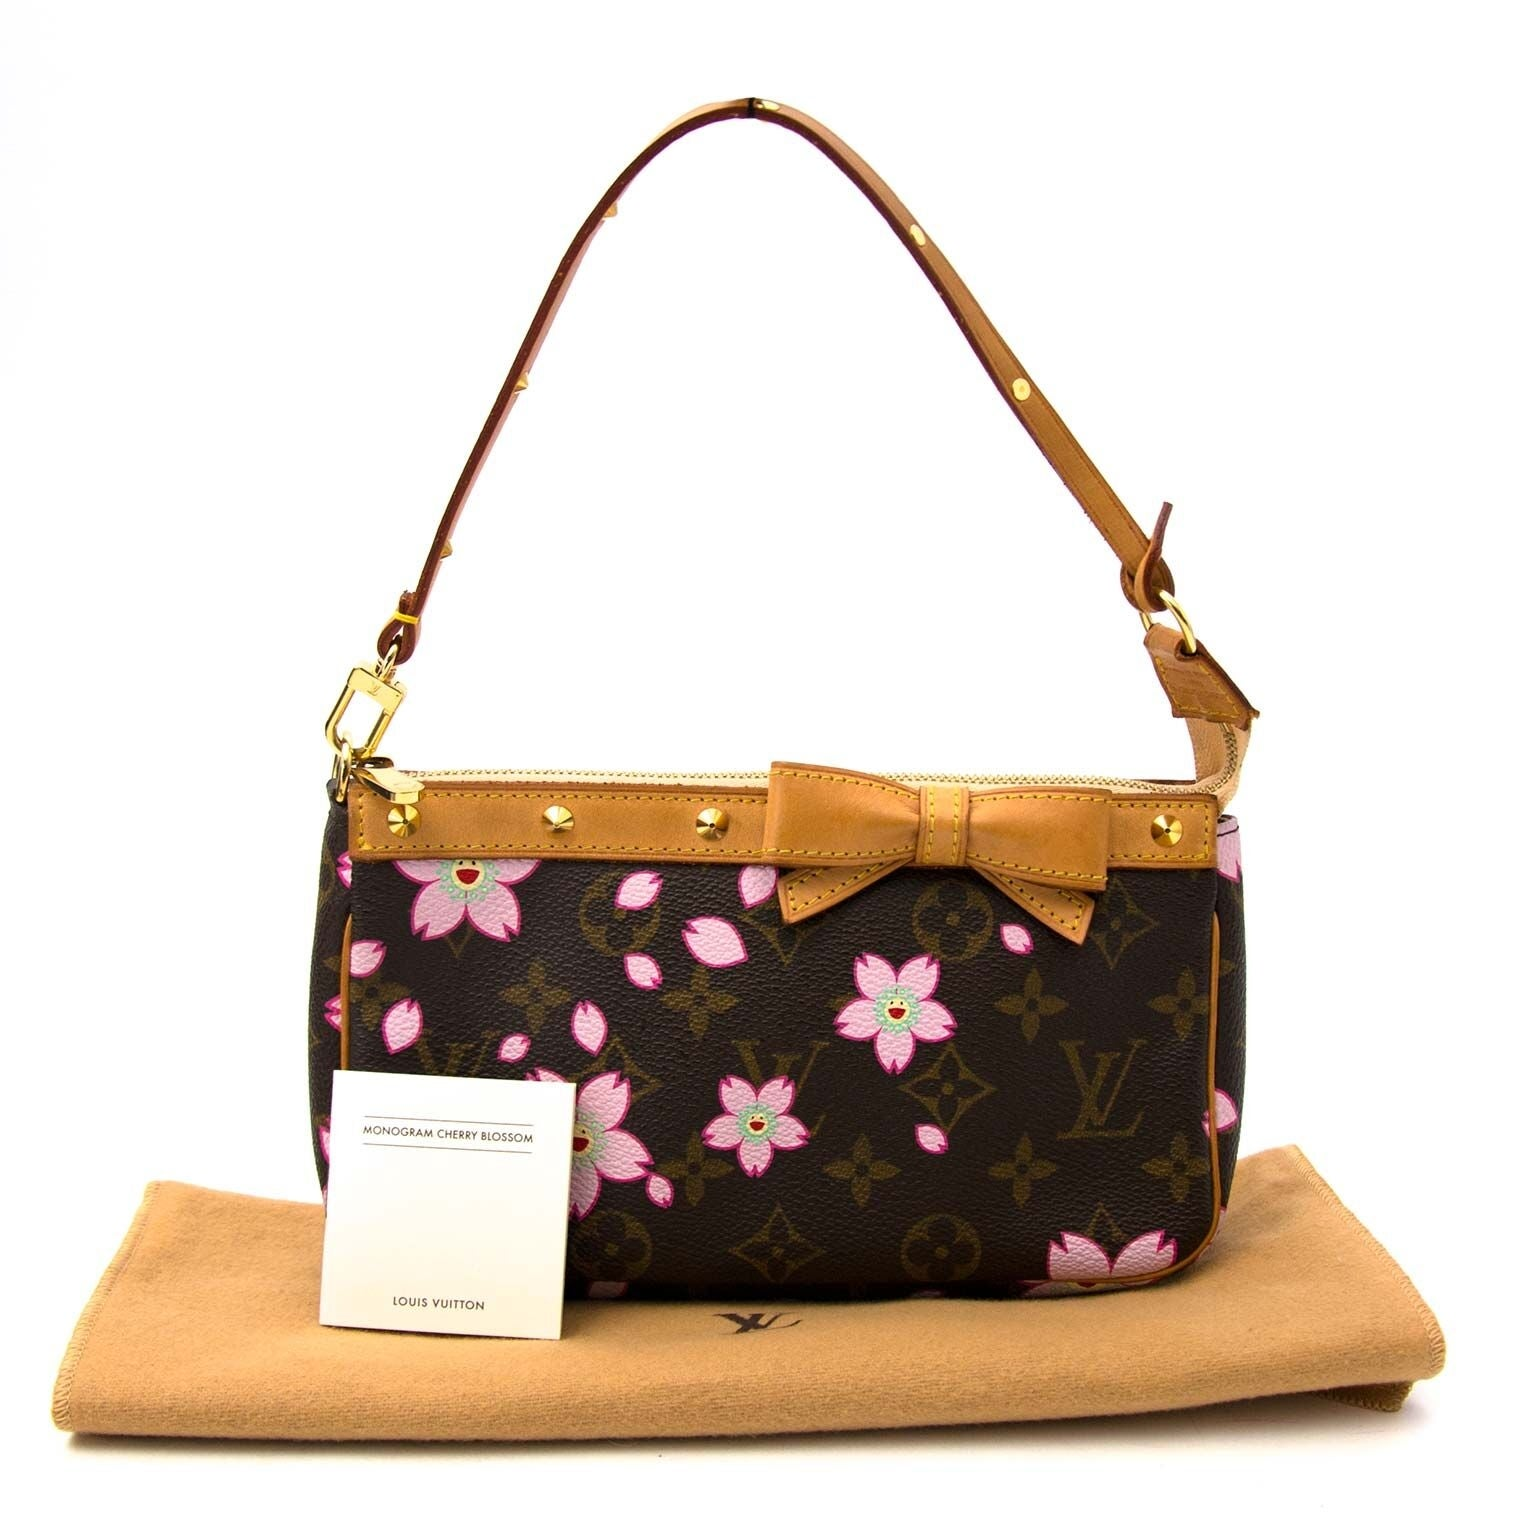 Louis Vuitton Limited Edition Monogram Cherry Blossom Pochette at 1stdibs f0c55f6187d76